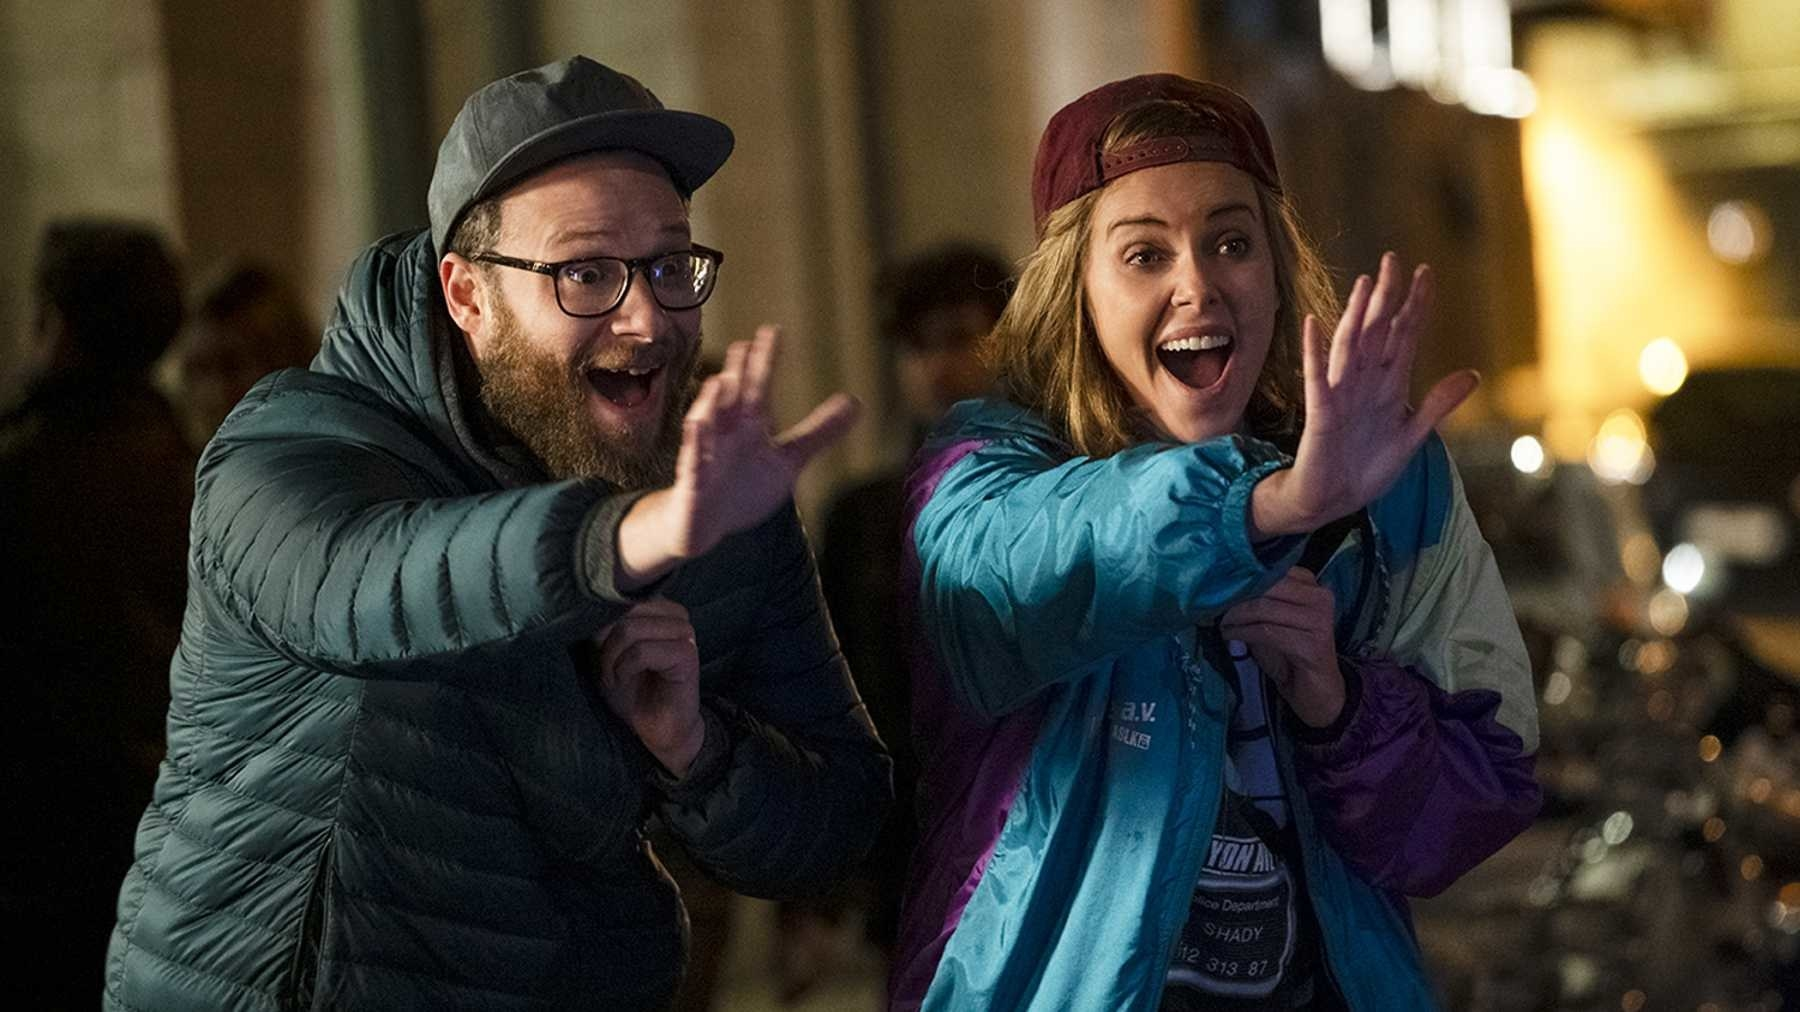 """Seth Rogen and Charlize Theron in """"Long Shot""""; they're holding up their hands in a stop motion and smiling"""